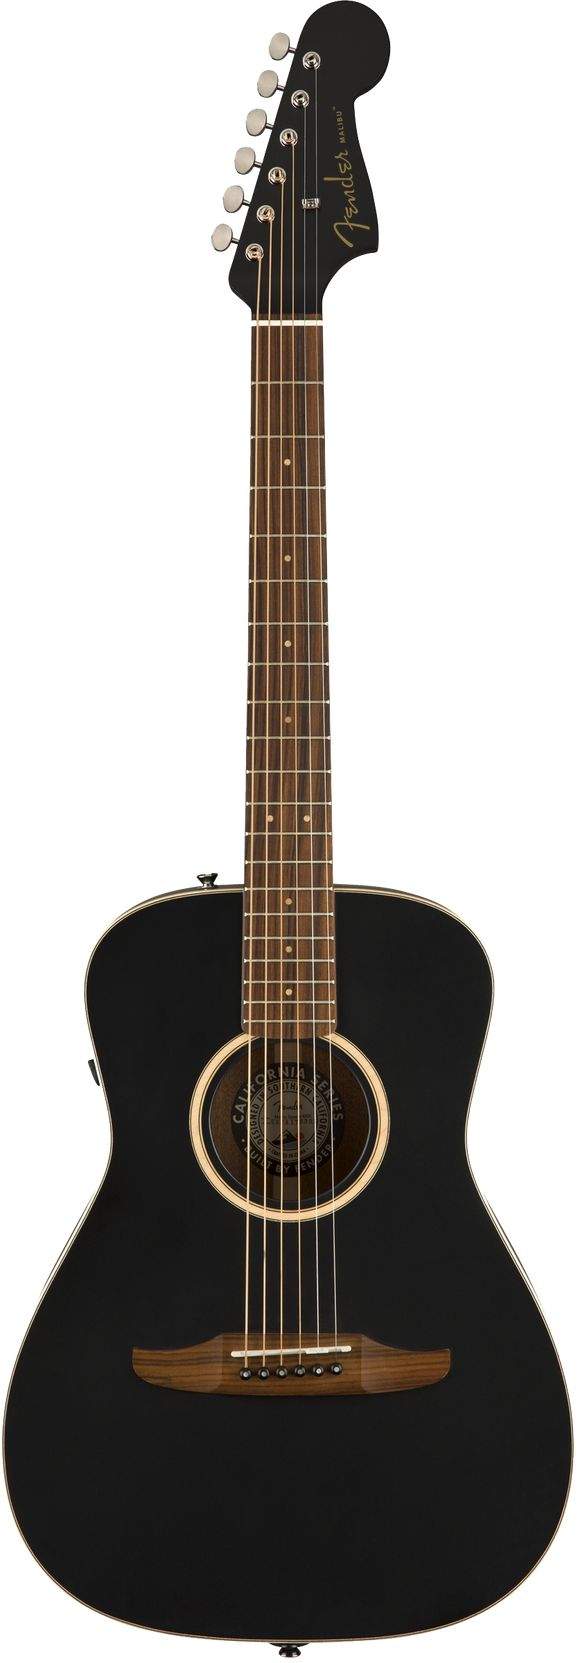 Fender Malibu Special Acoustic / Electric Guitar - Jetty Black